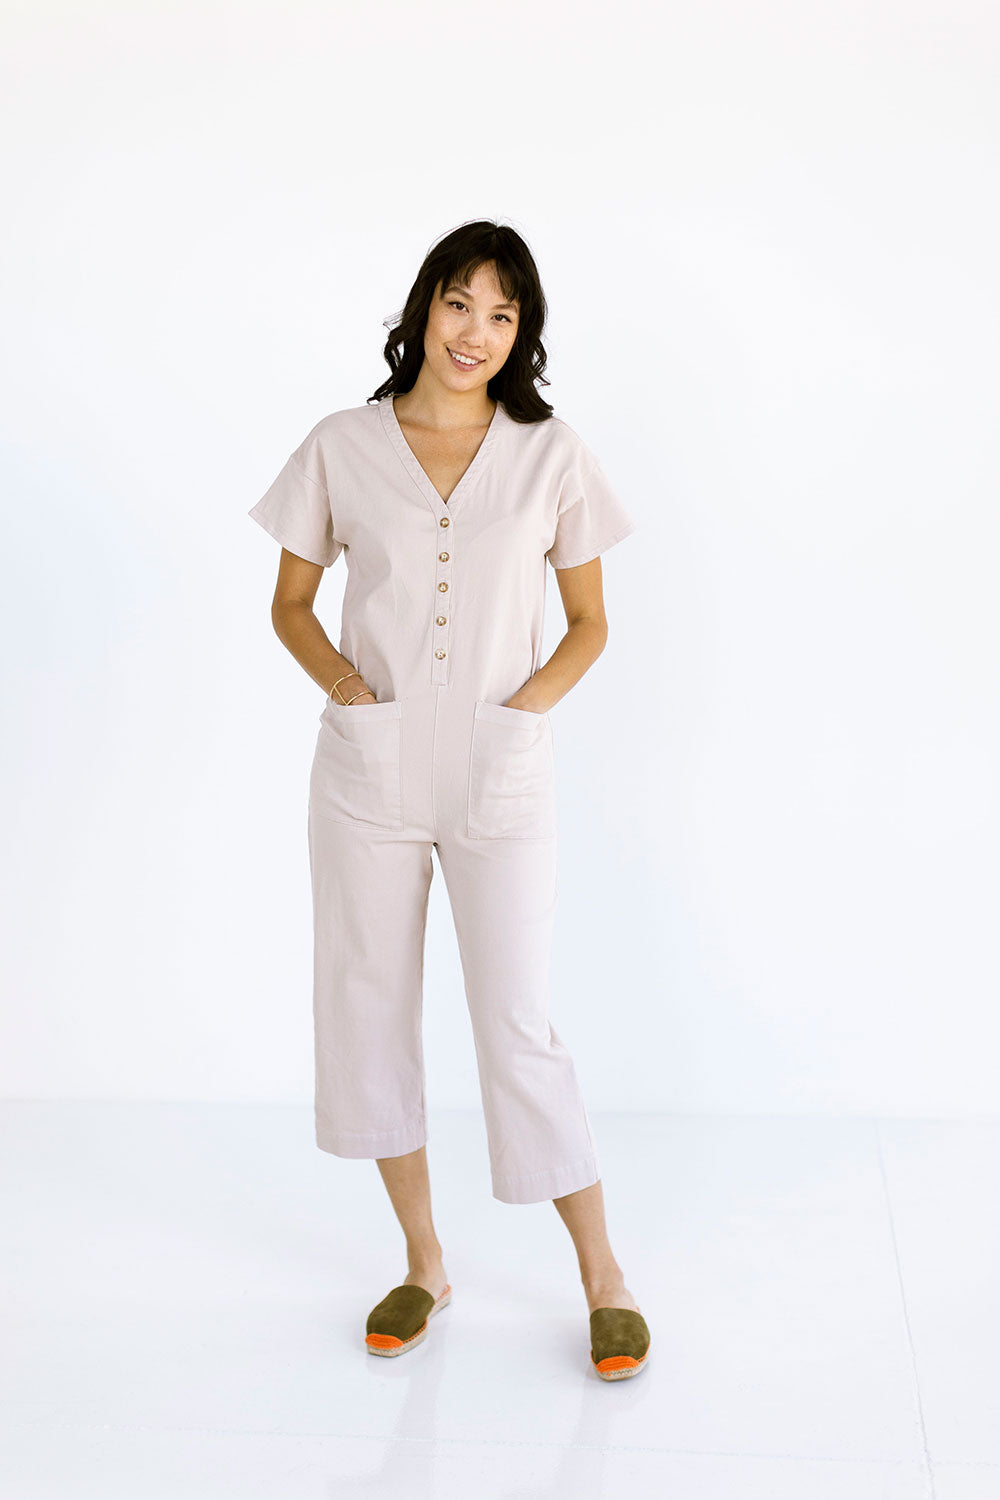 The Coverall in Mushroom - FINAL SALE, LAST CHANCE